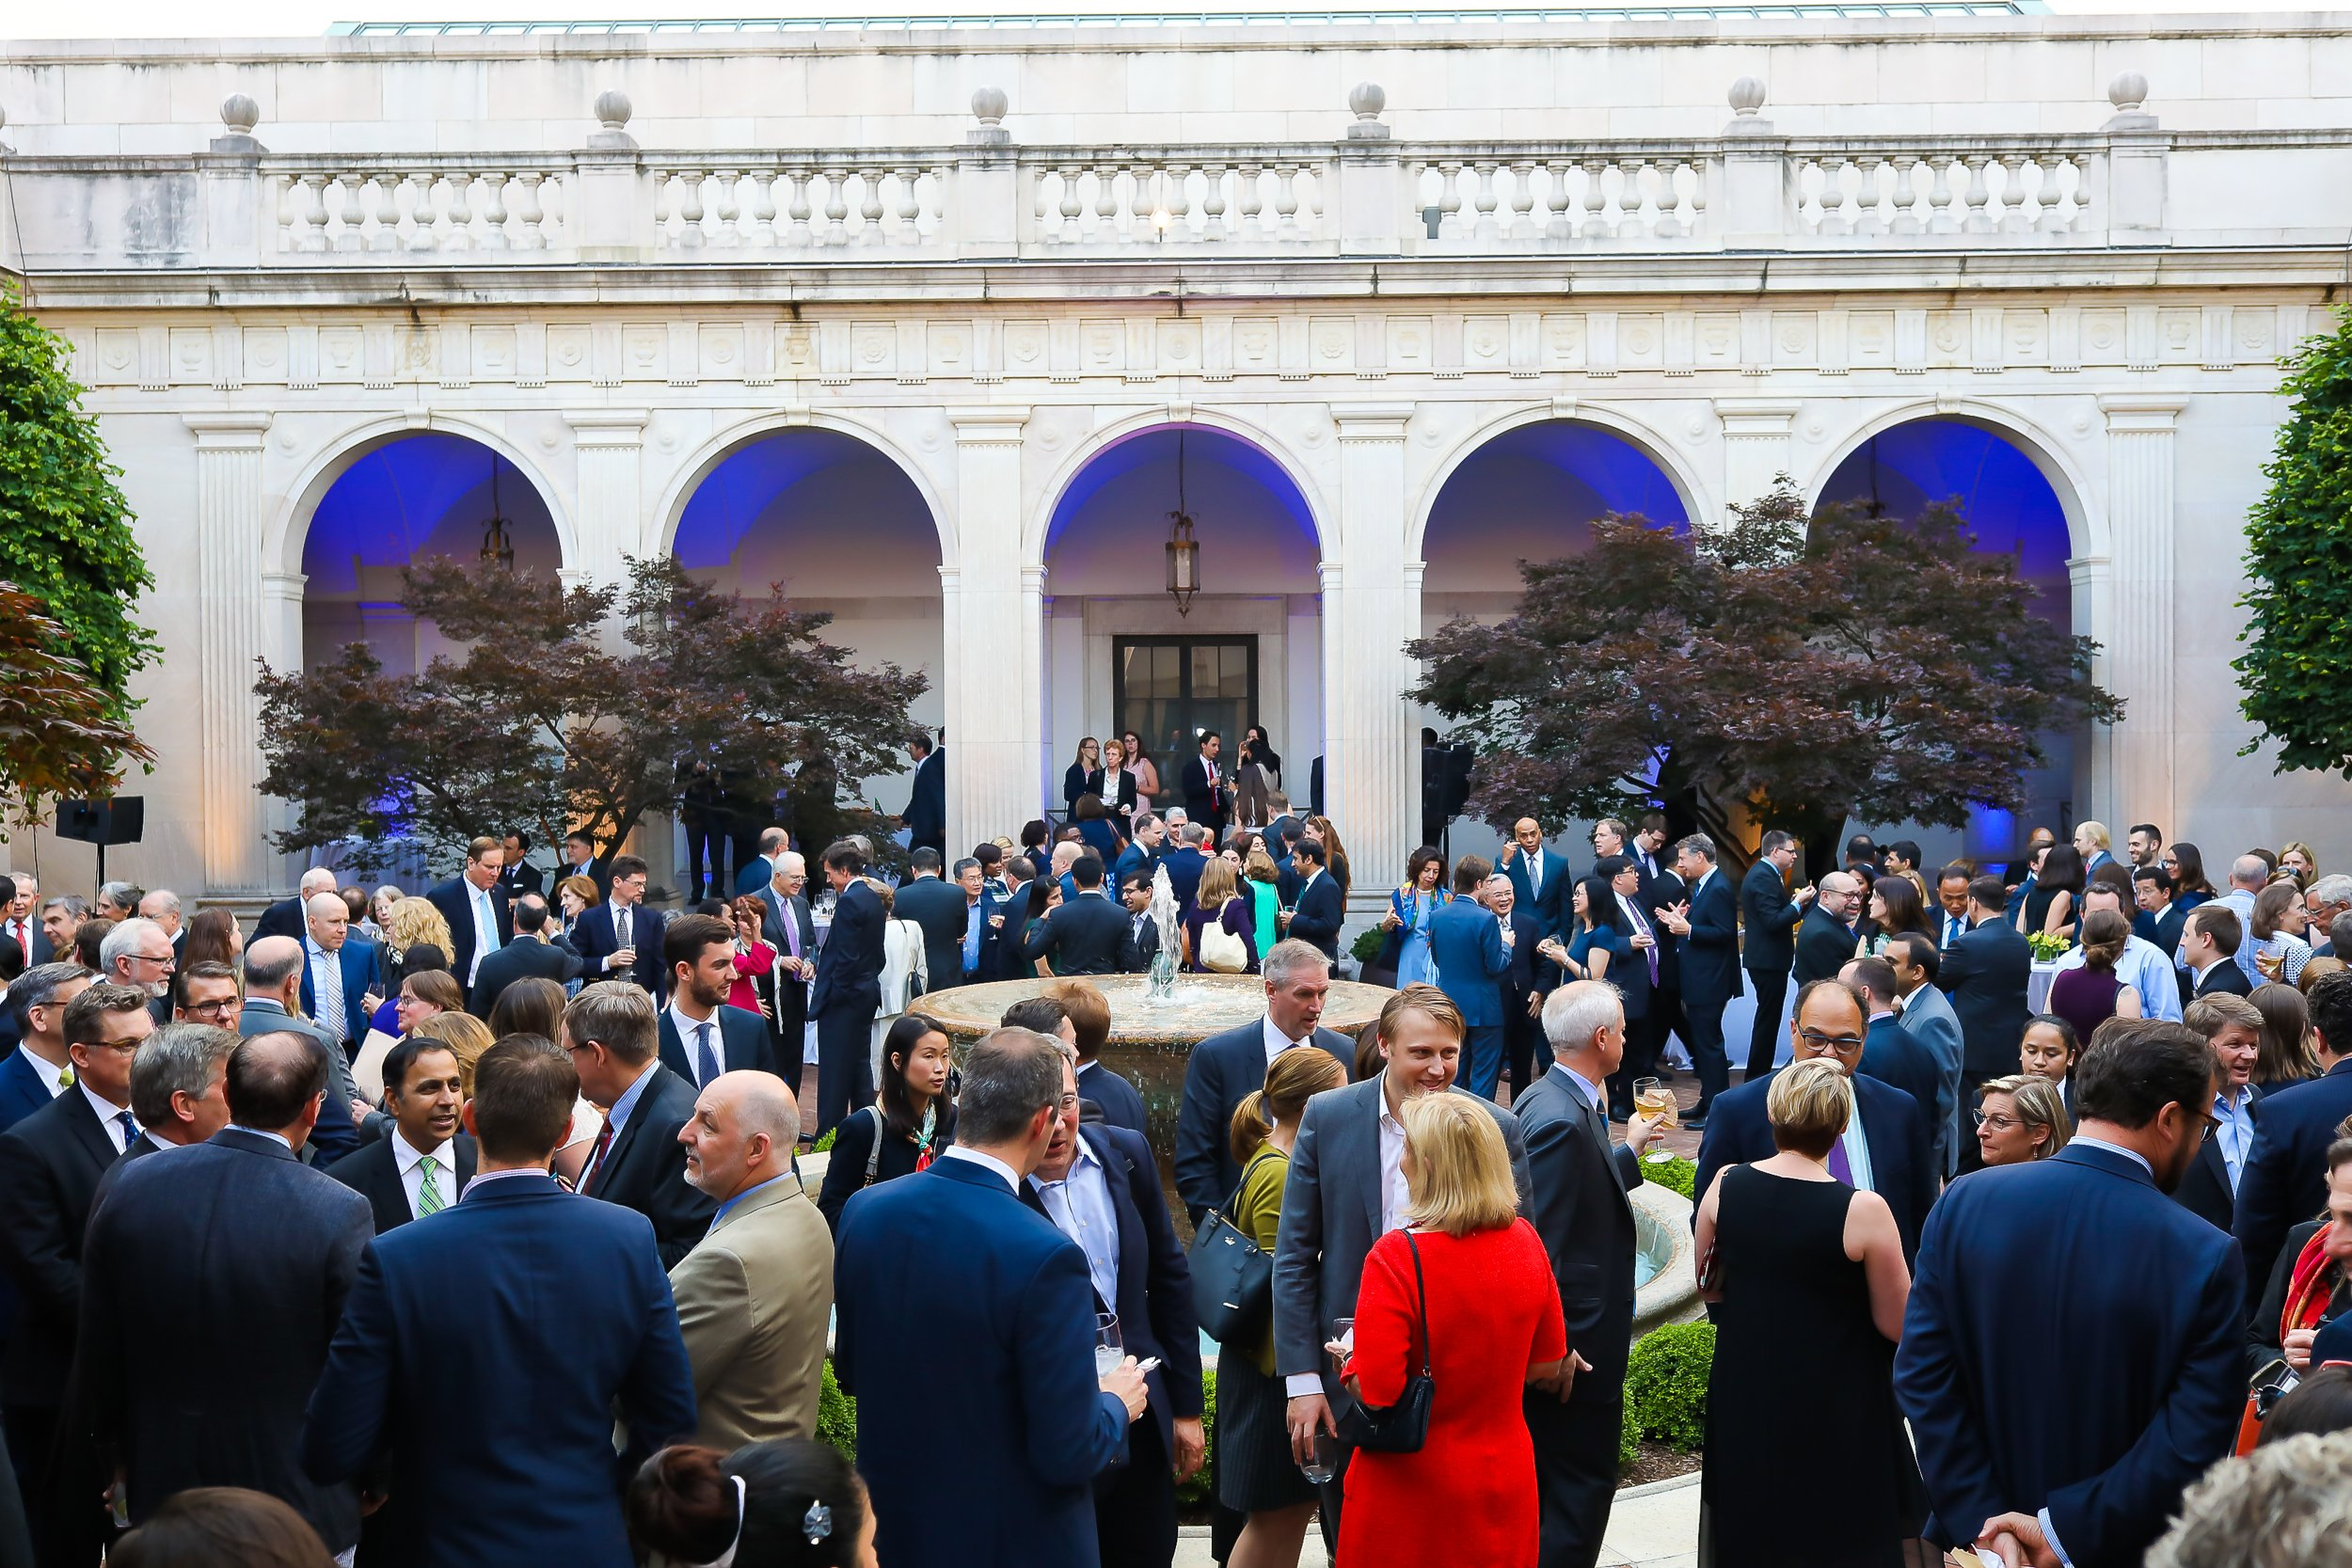 The anniversary celebration was in the Freer Gallery's courtyard.